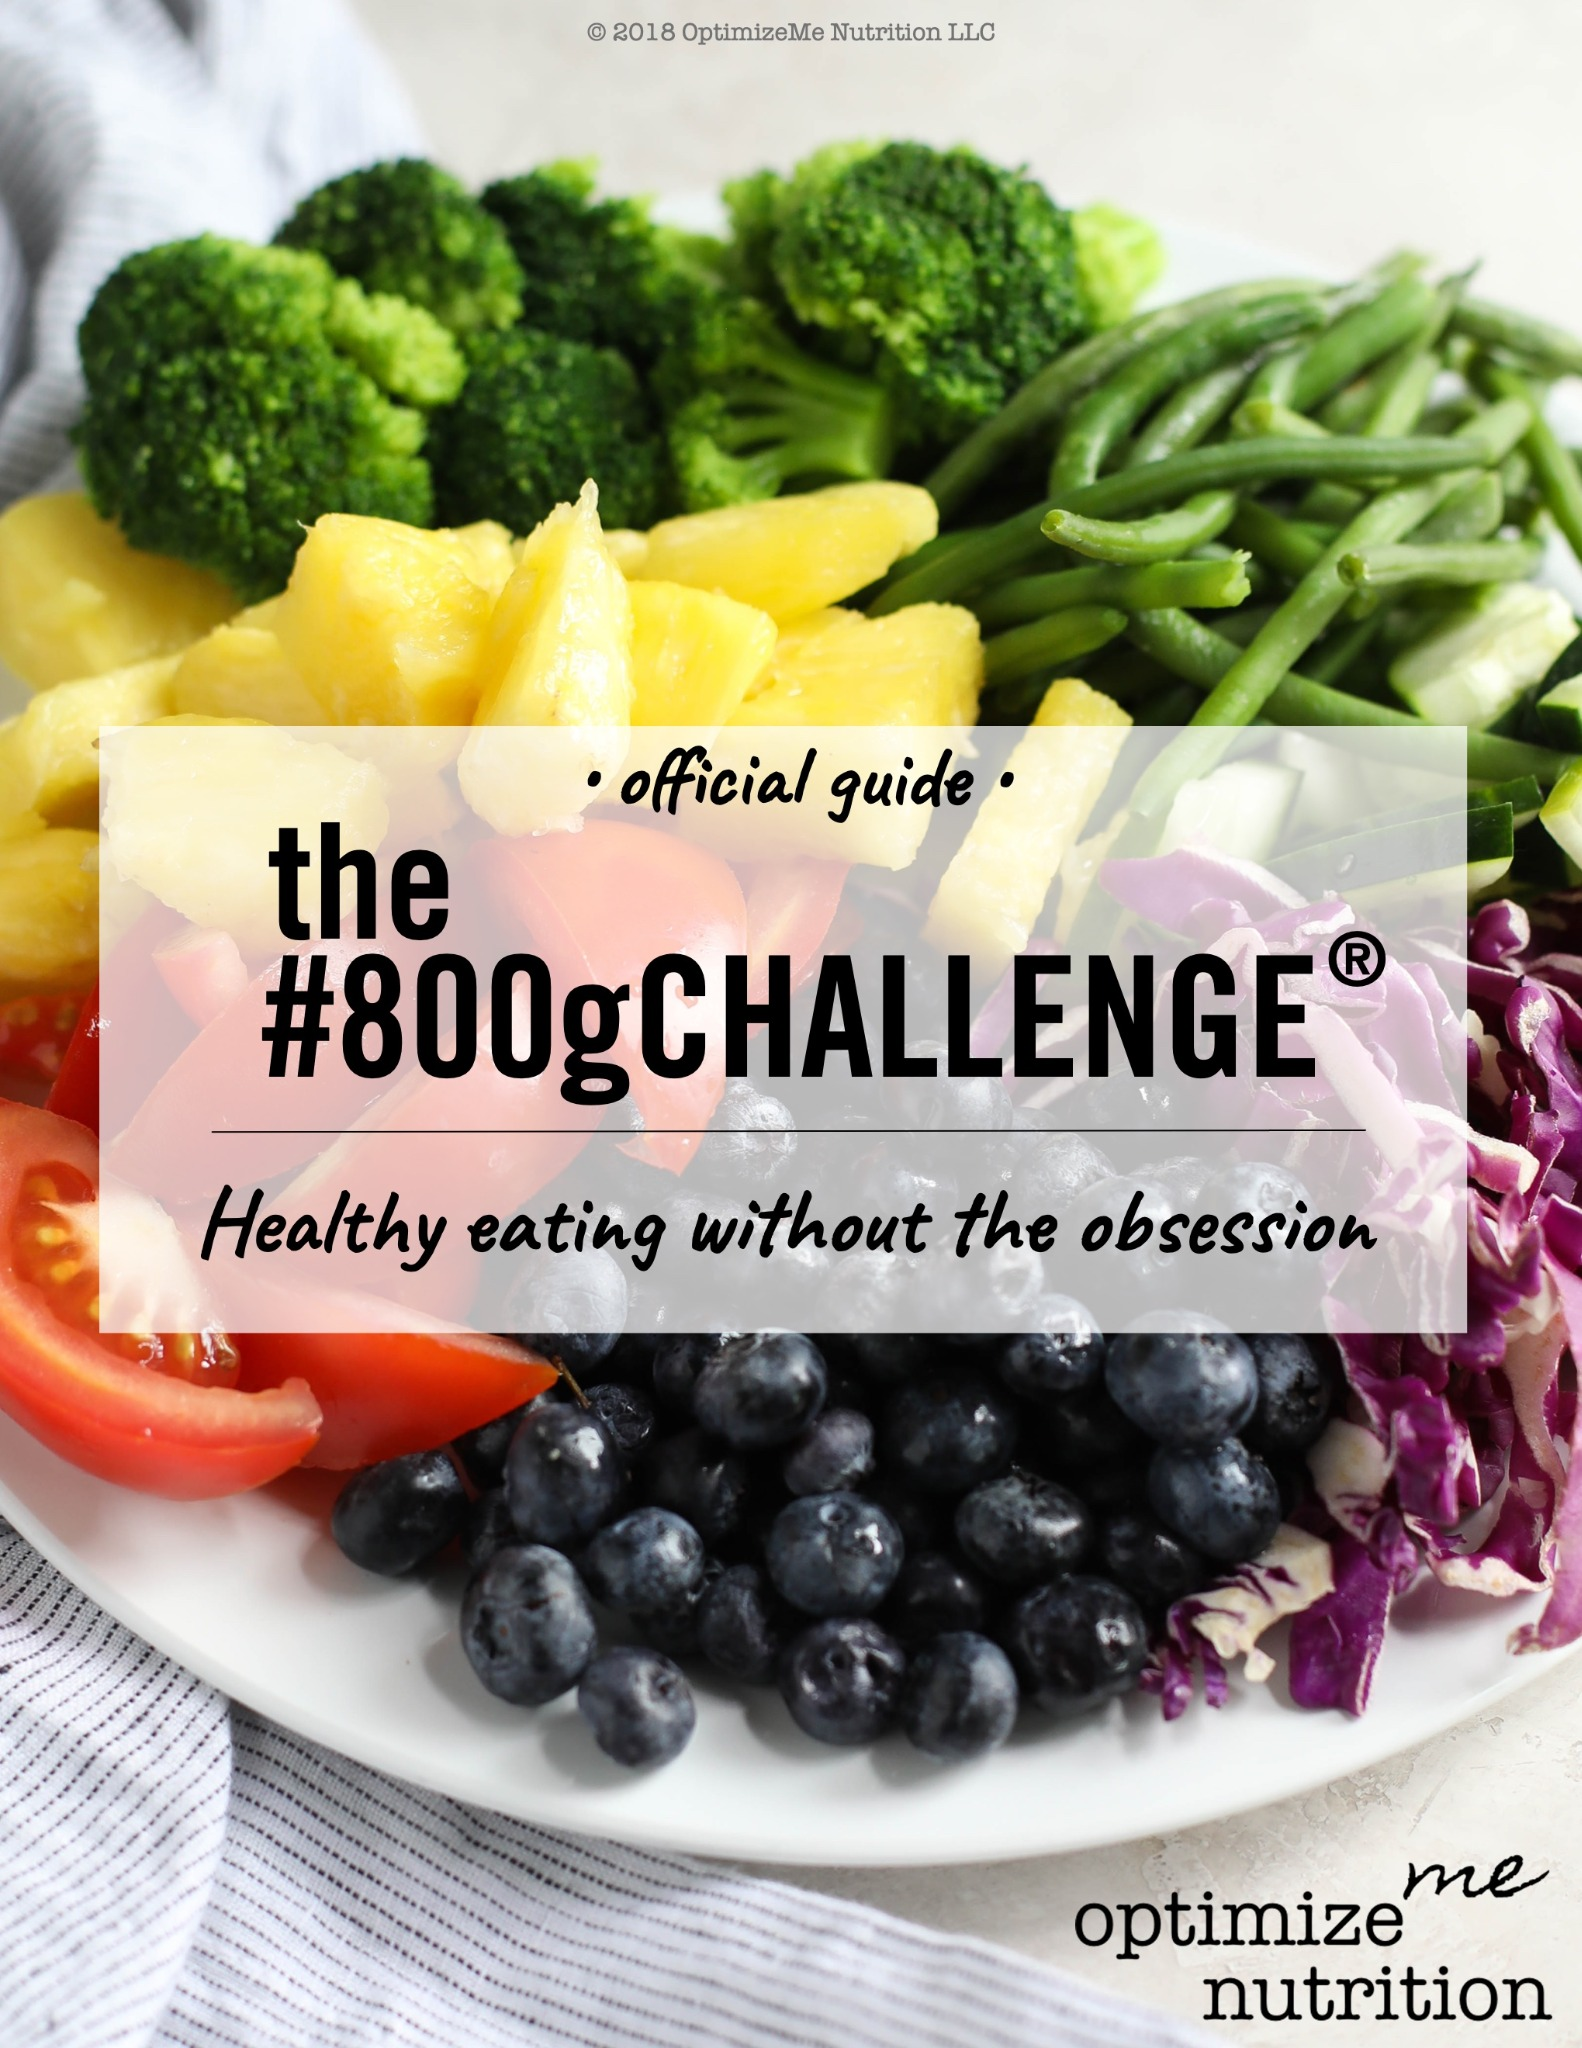 The #800gChallenge® Official Guide